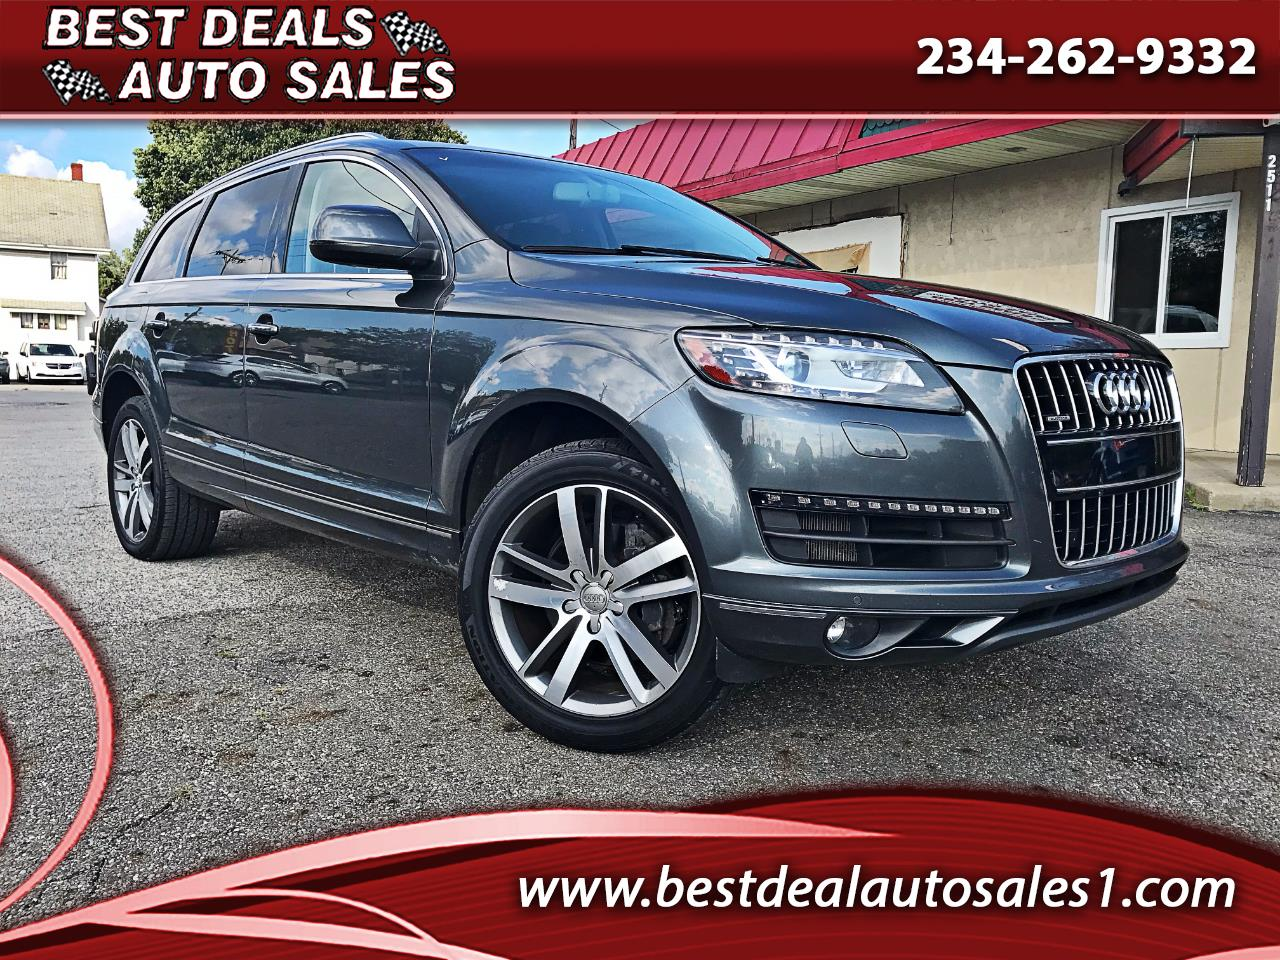 Akron Select Auto Sales >> Used Cars For Sale Akron Oh 44314 Best Deals Auto Sales